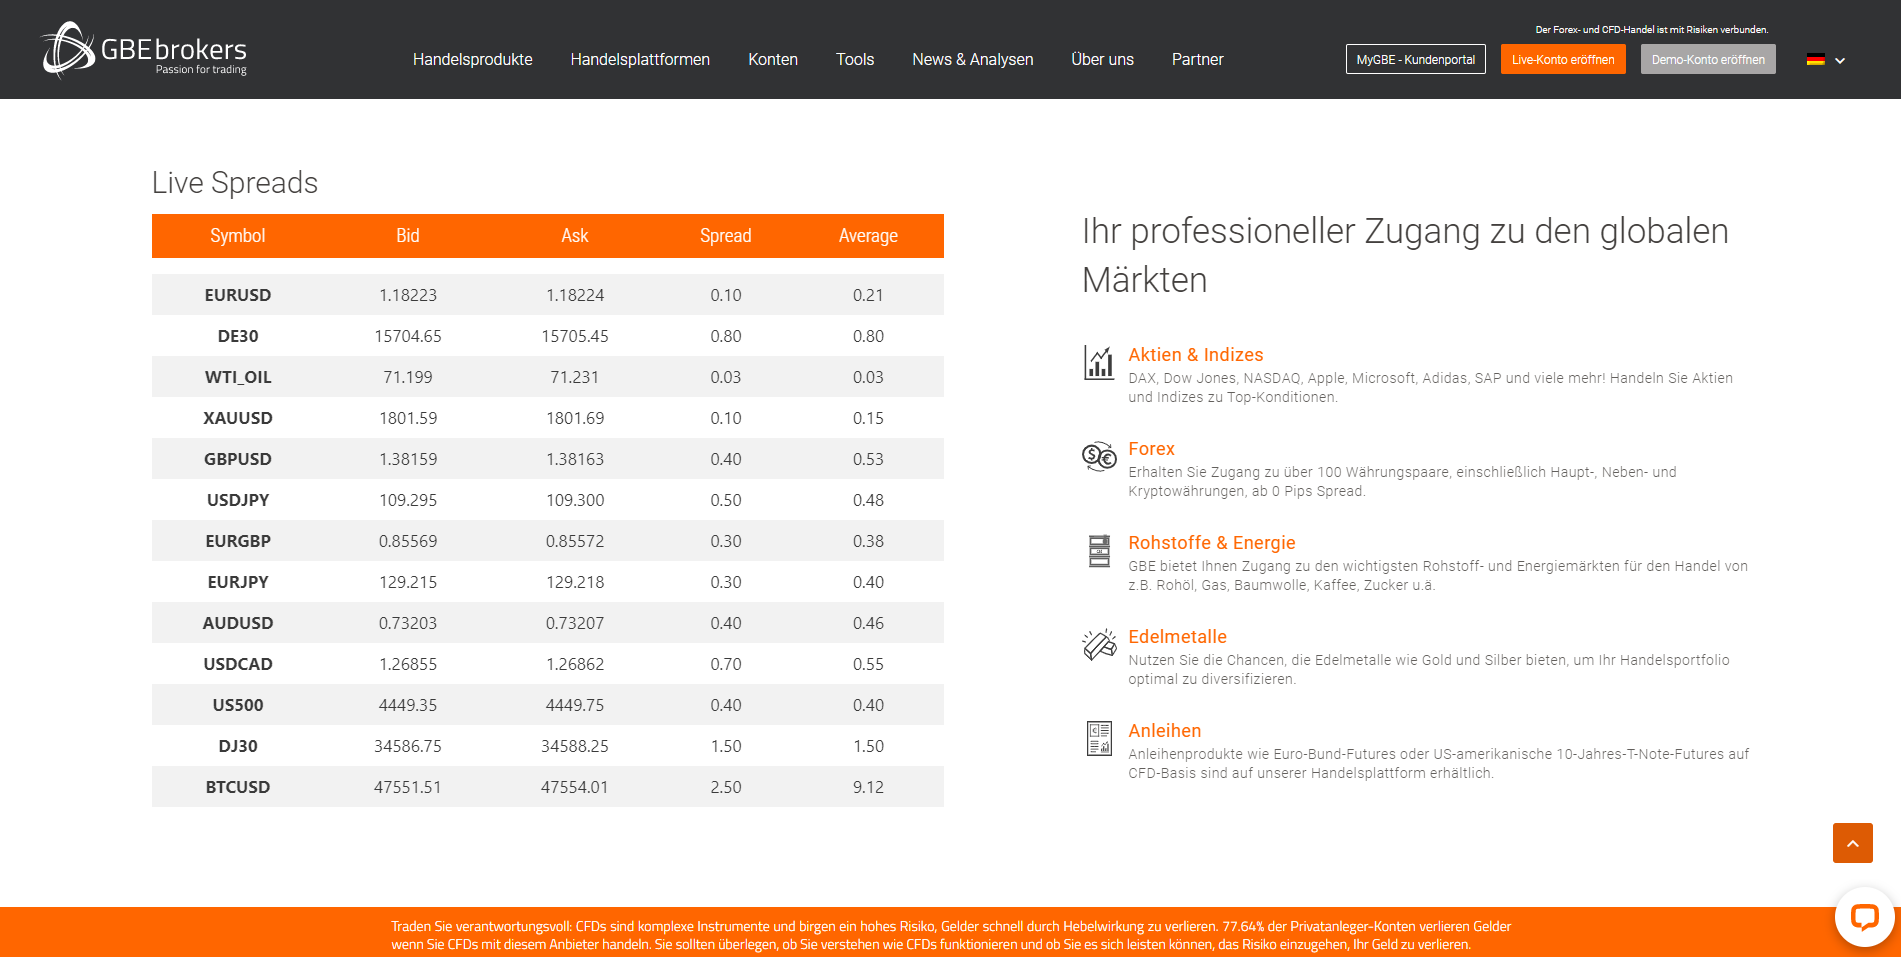 Offizielle Webseite GBE Brokers